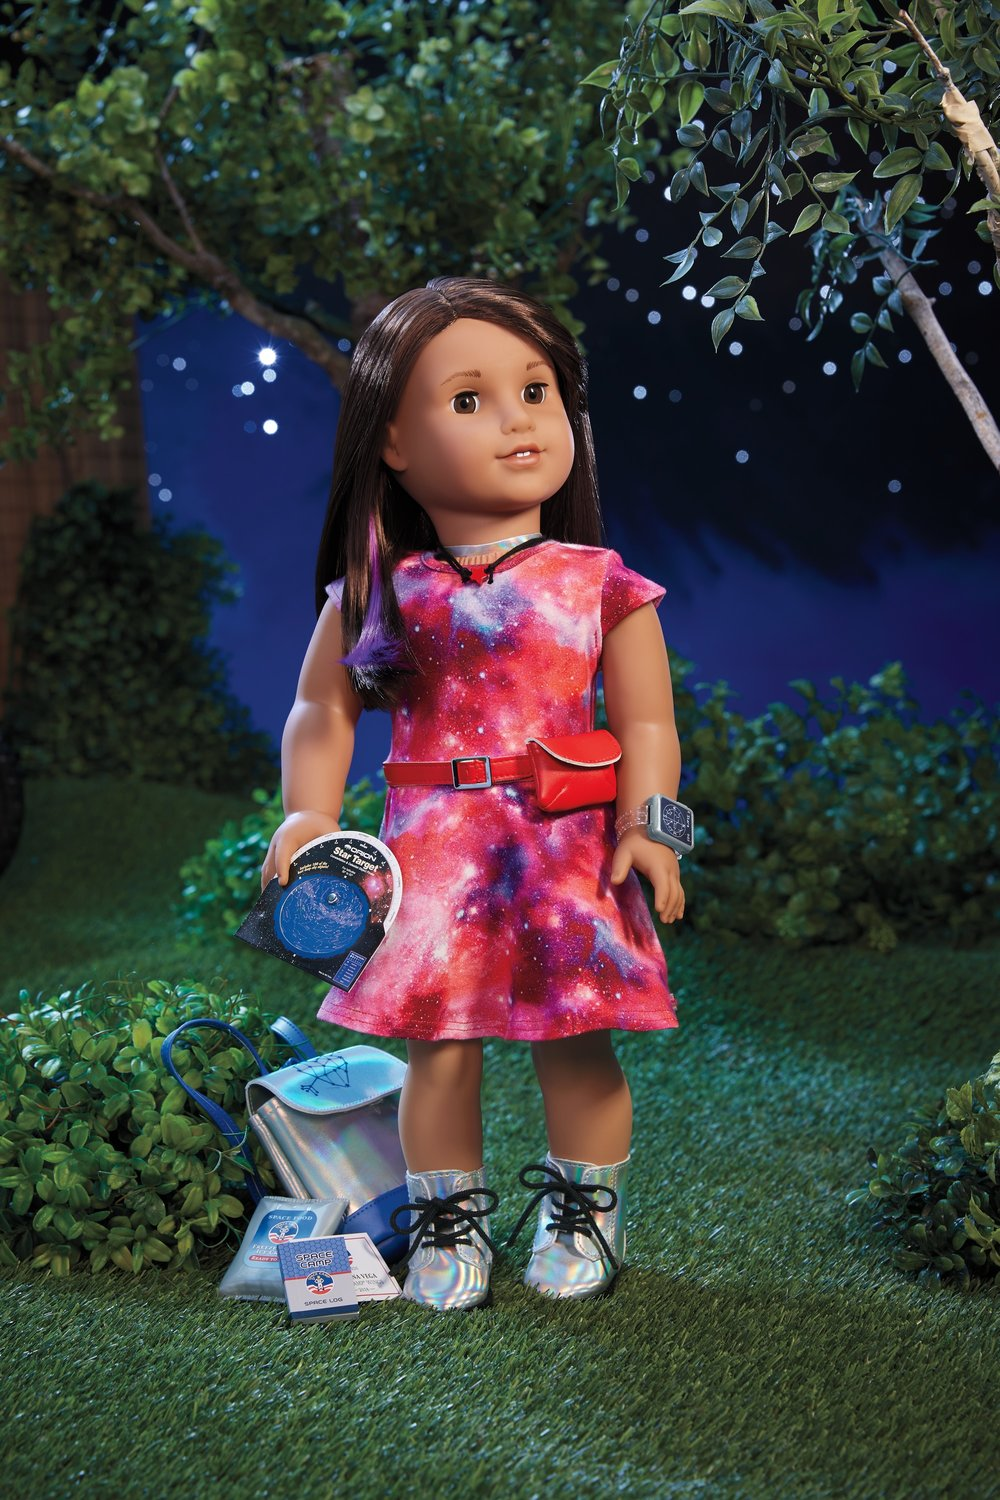 American Girl's 2018 Girl of the Year Is Luciana Vega - Aspiring Astronaut